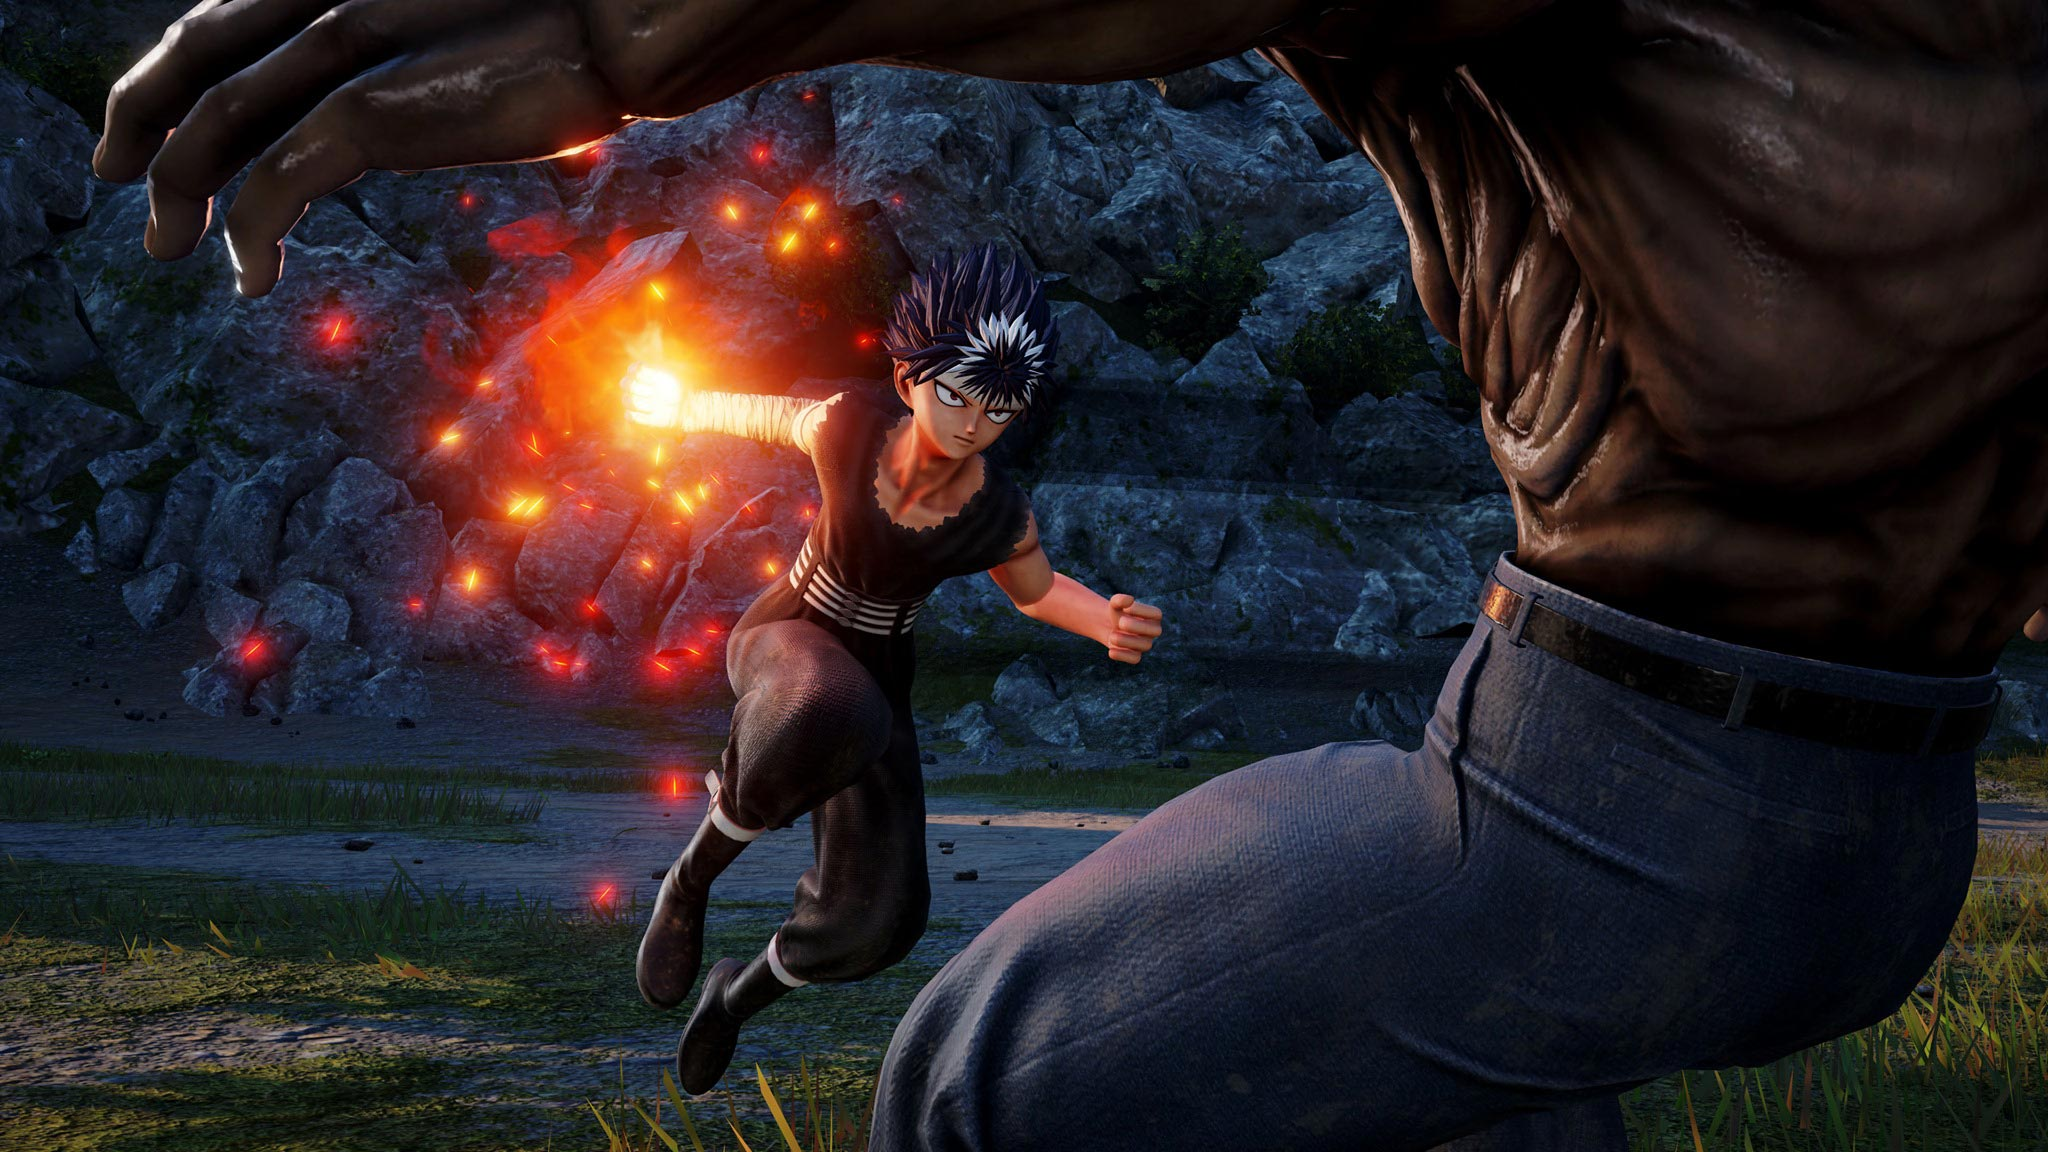 Jump Force Hiei screens 2 out of 4 image gallery